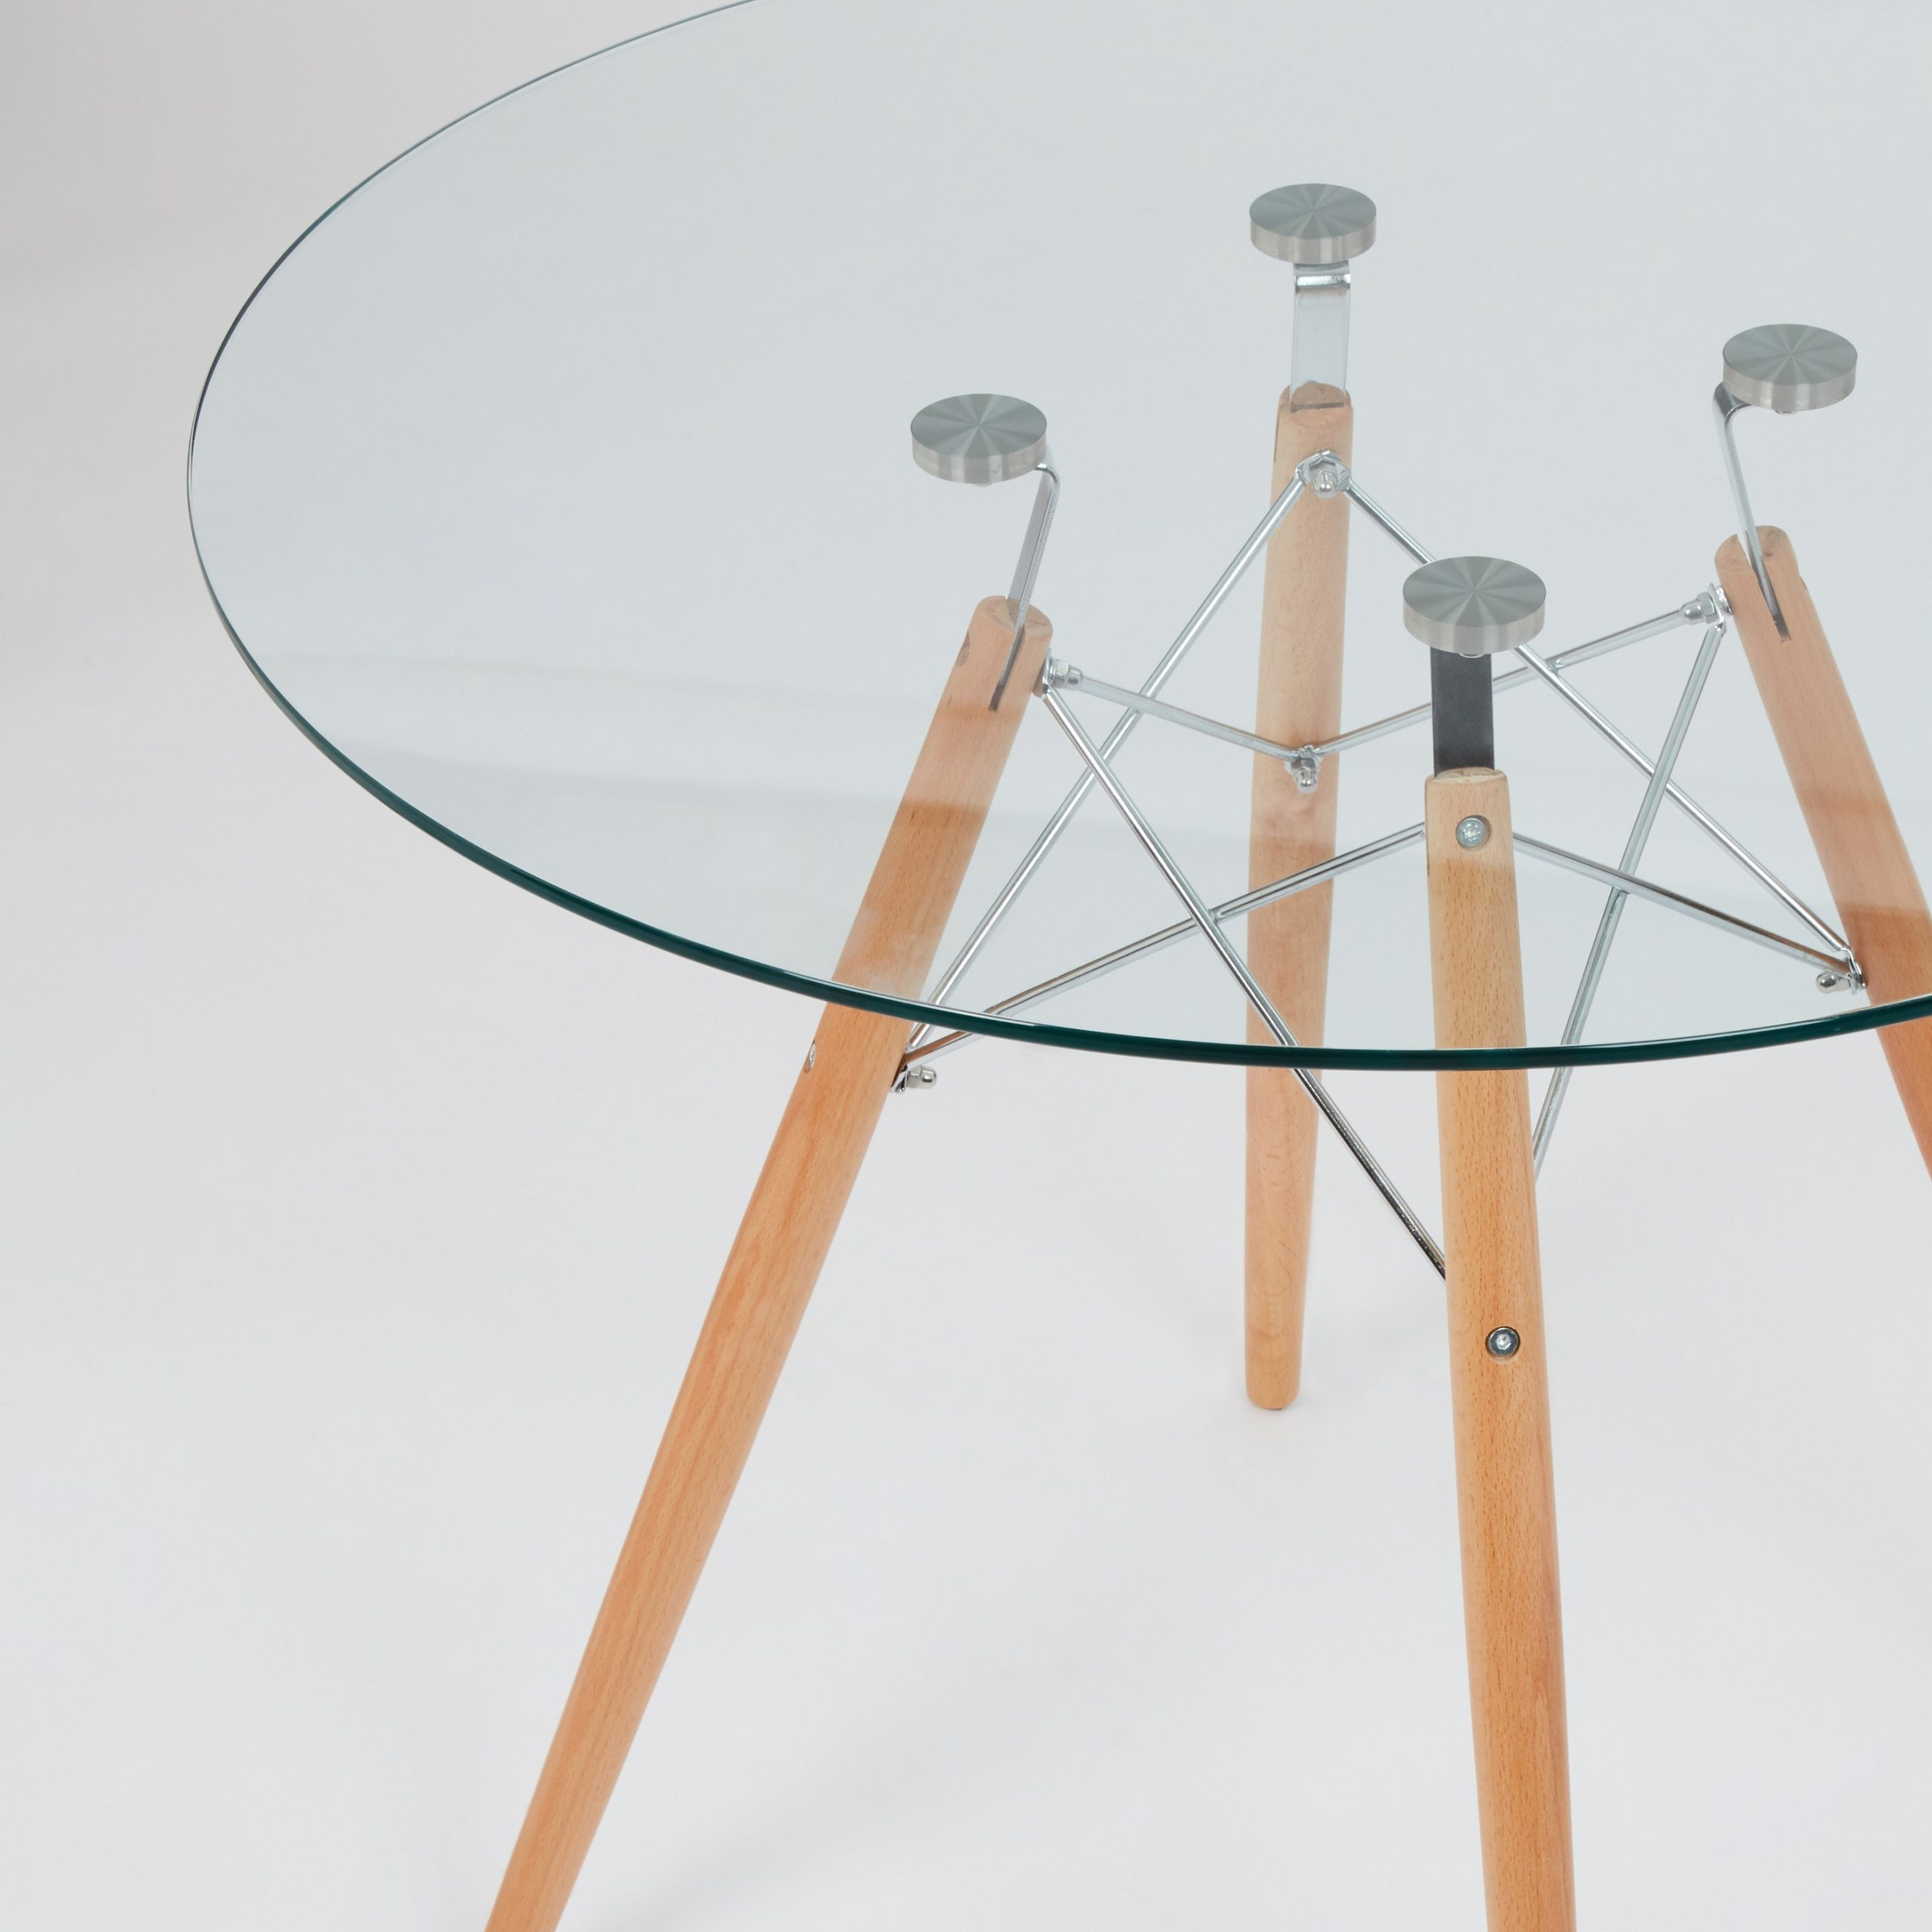 2018 Eames Style Dining Tables With Chromed Leg And Tempered Glass Top For Dining Glass Table With Beechwood Legs (Size: 80Cm (View 1 of 30)